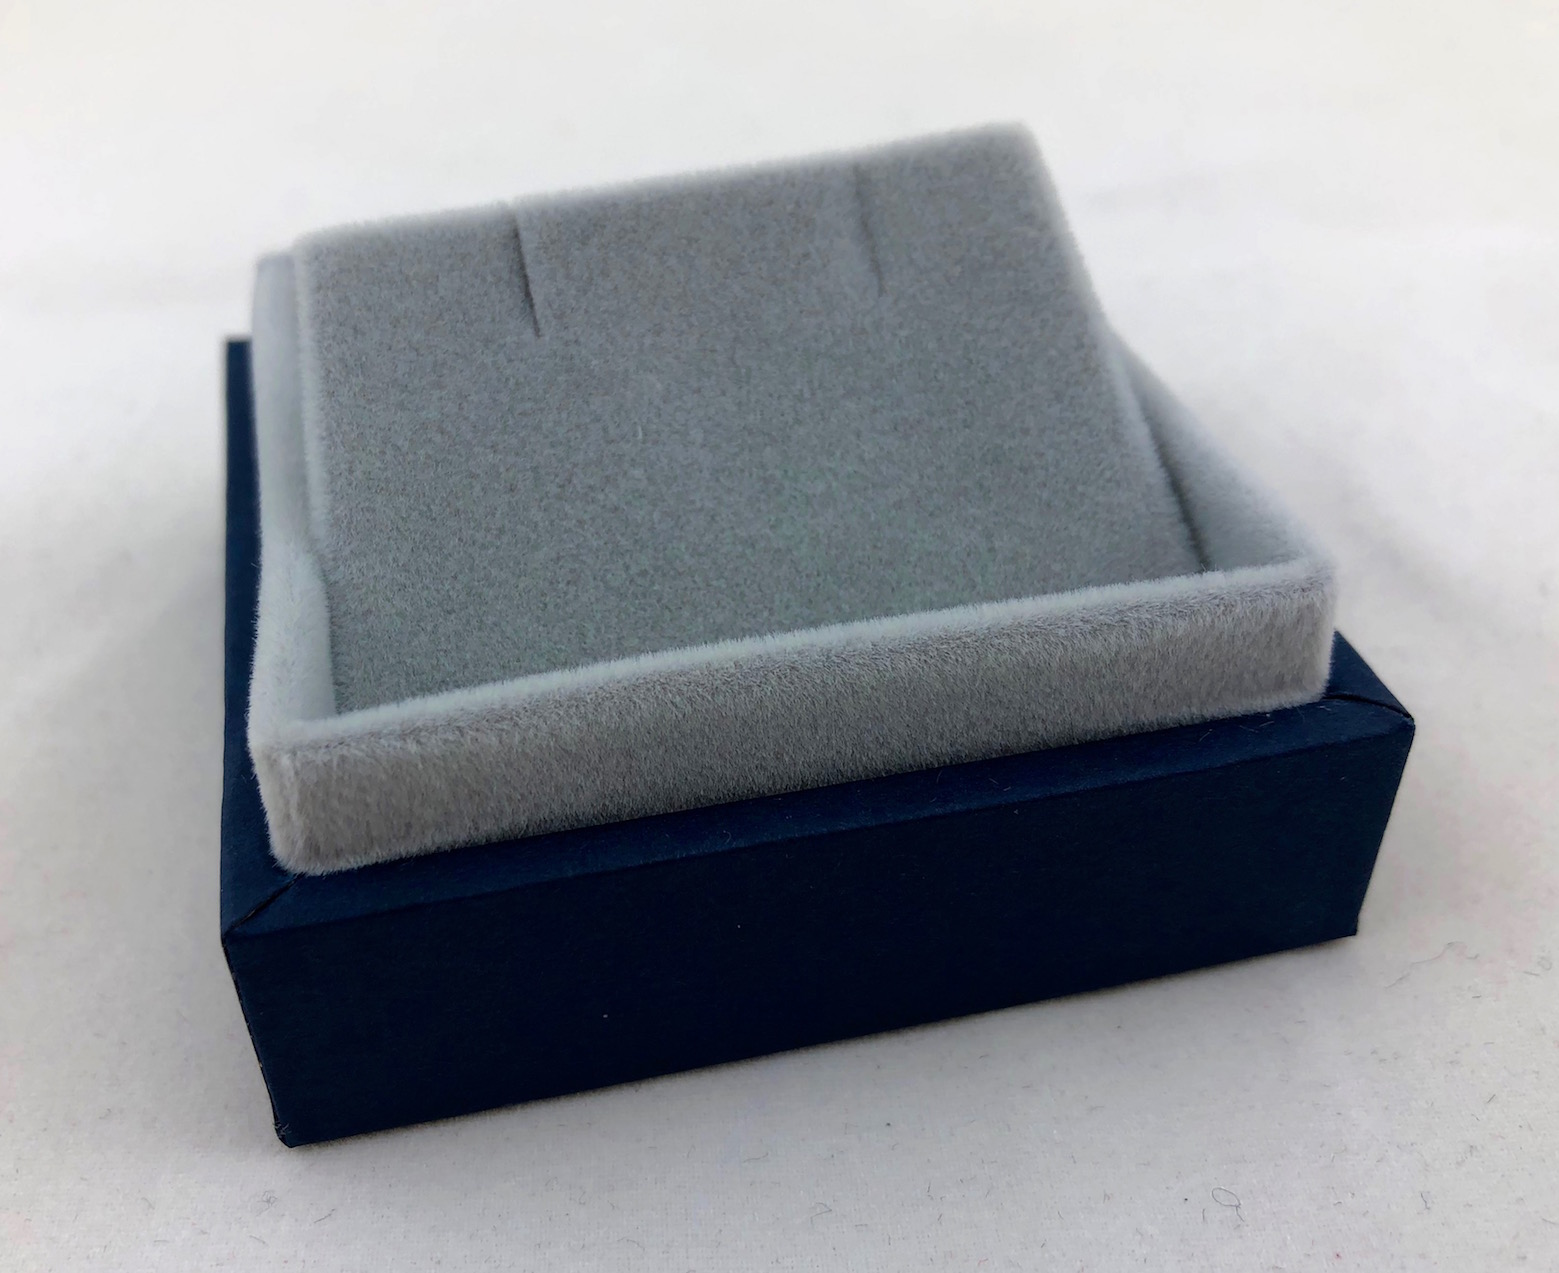 Blue Earring box with grey suede inserts